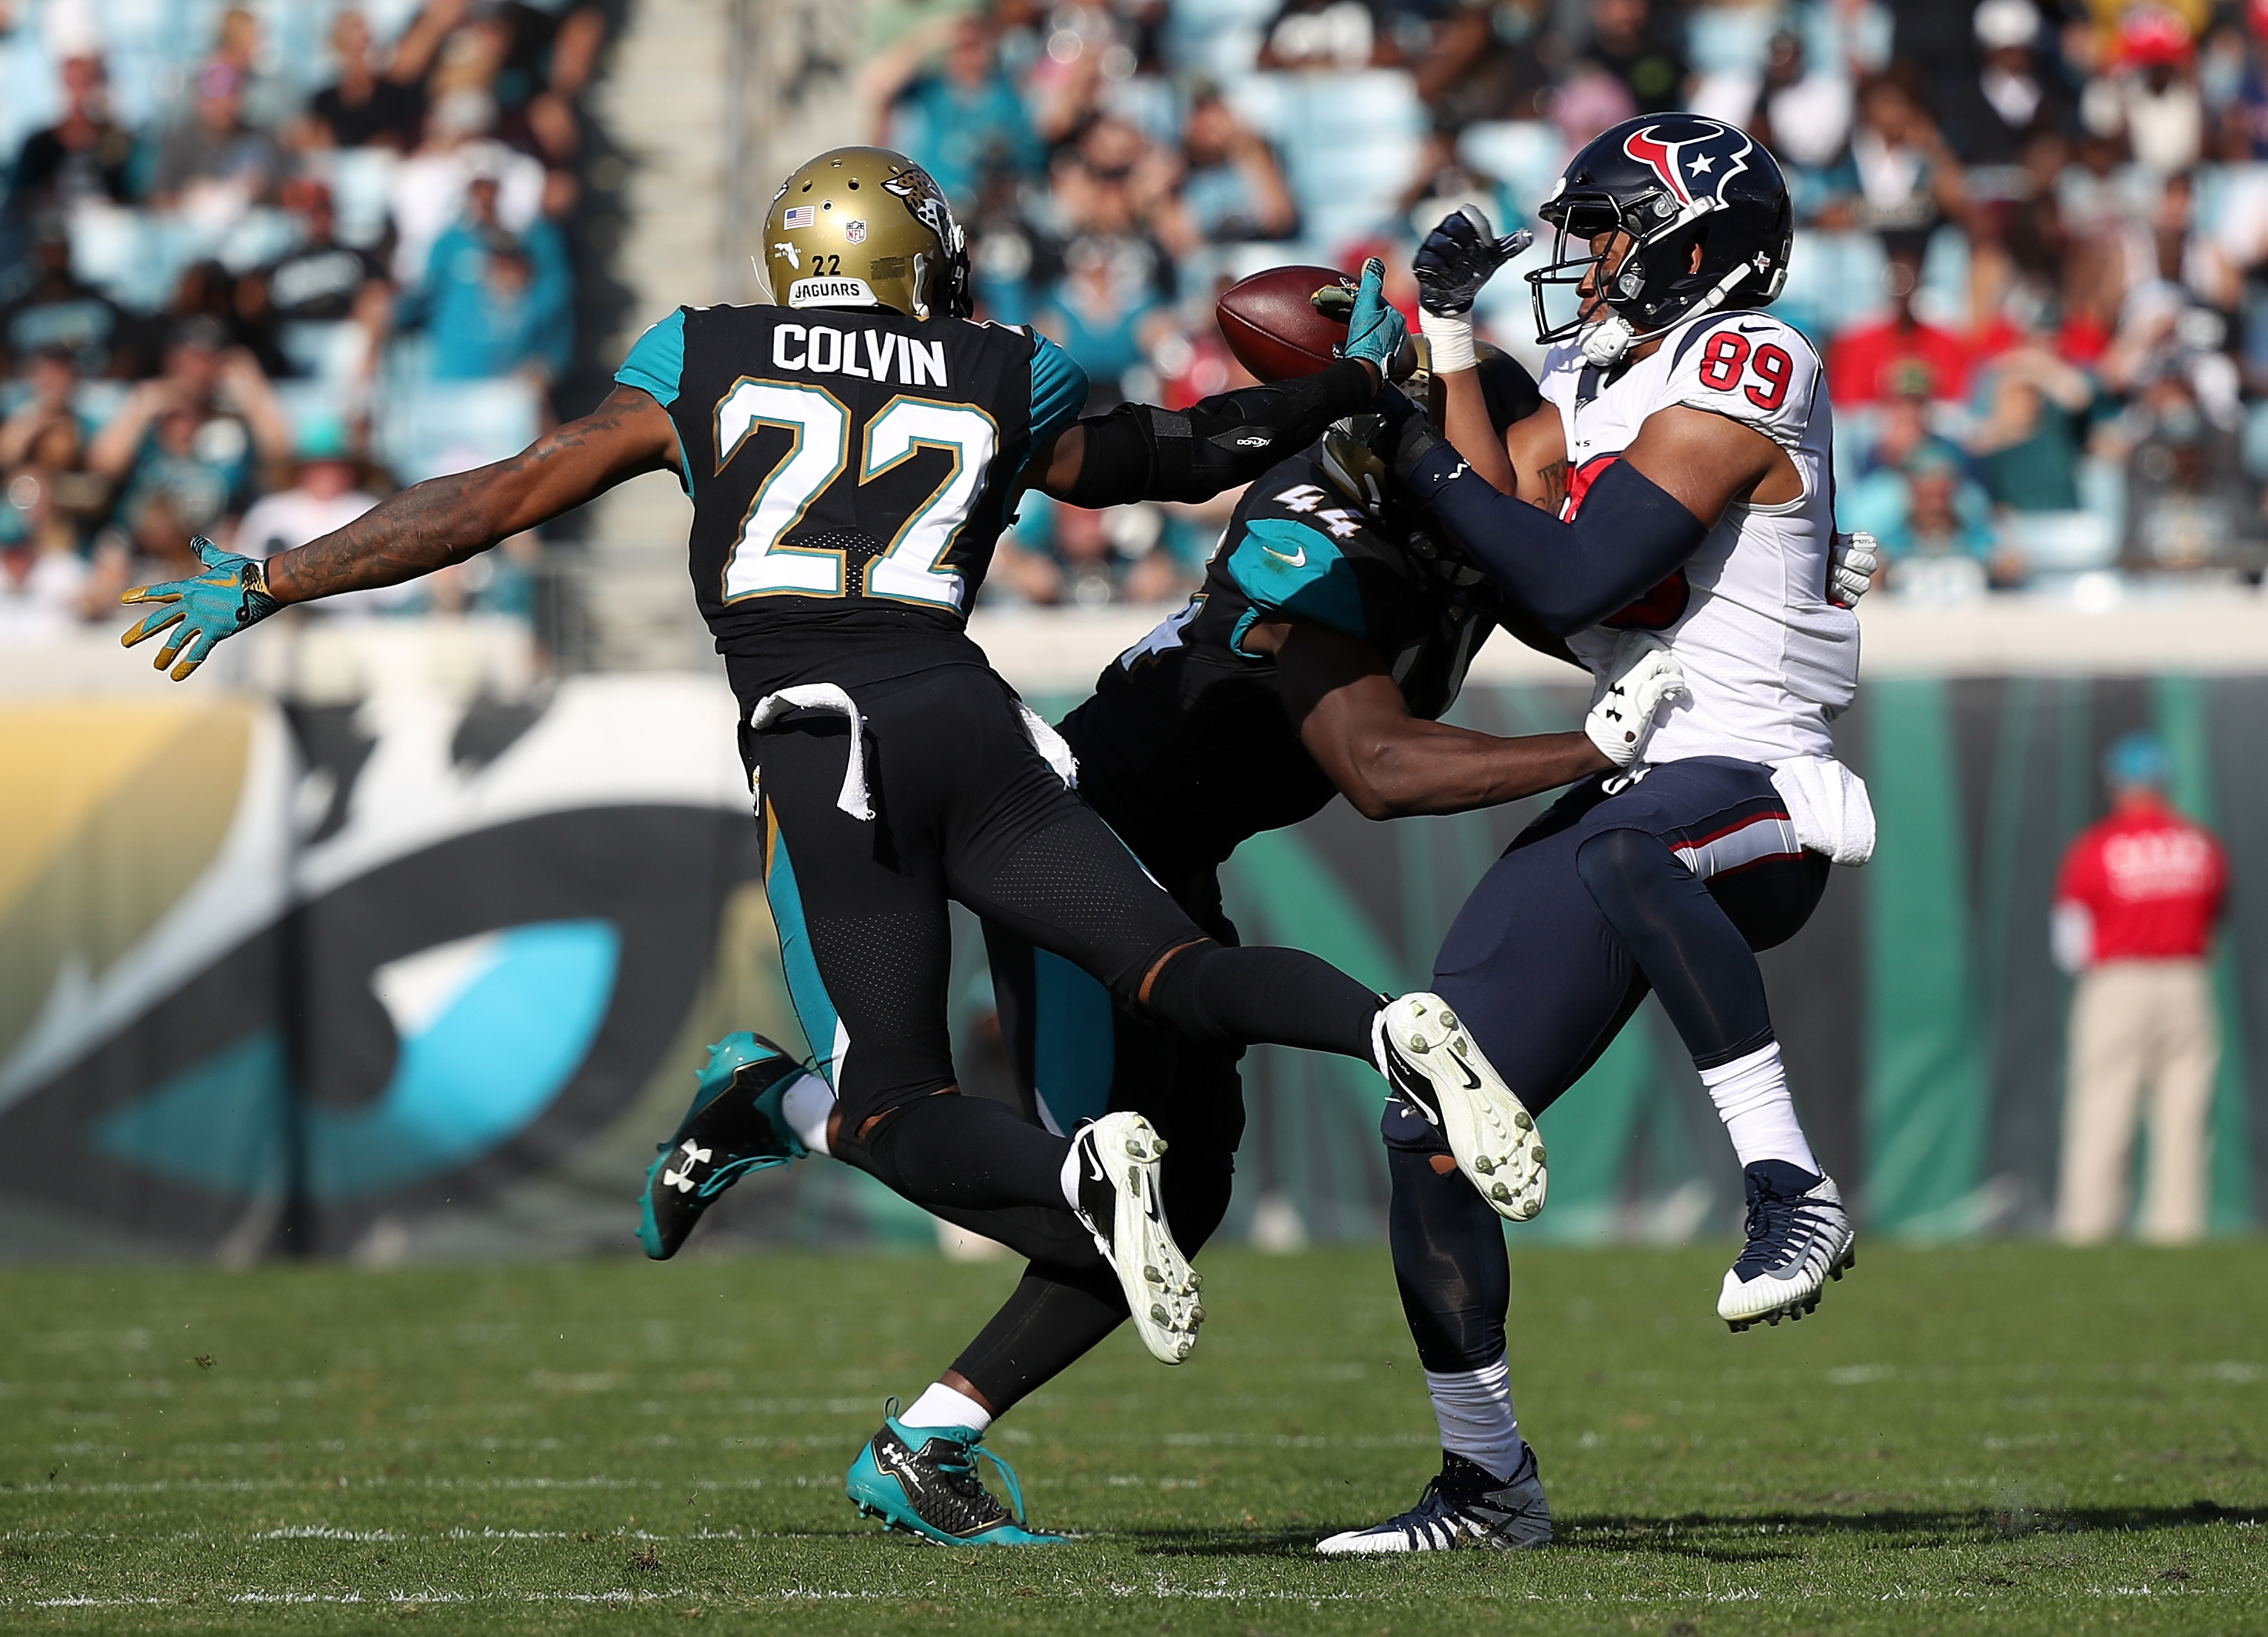 Jaguars expected to re-sign wide receiver Marqise Lee